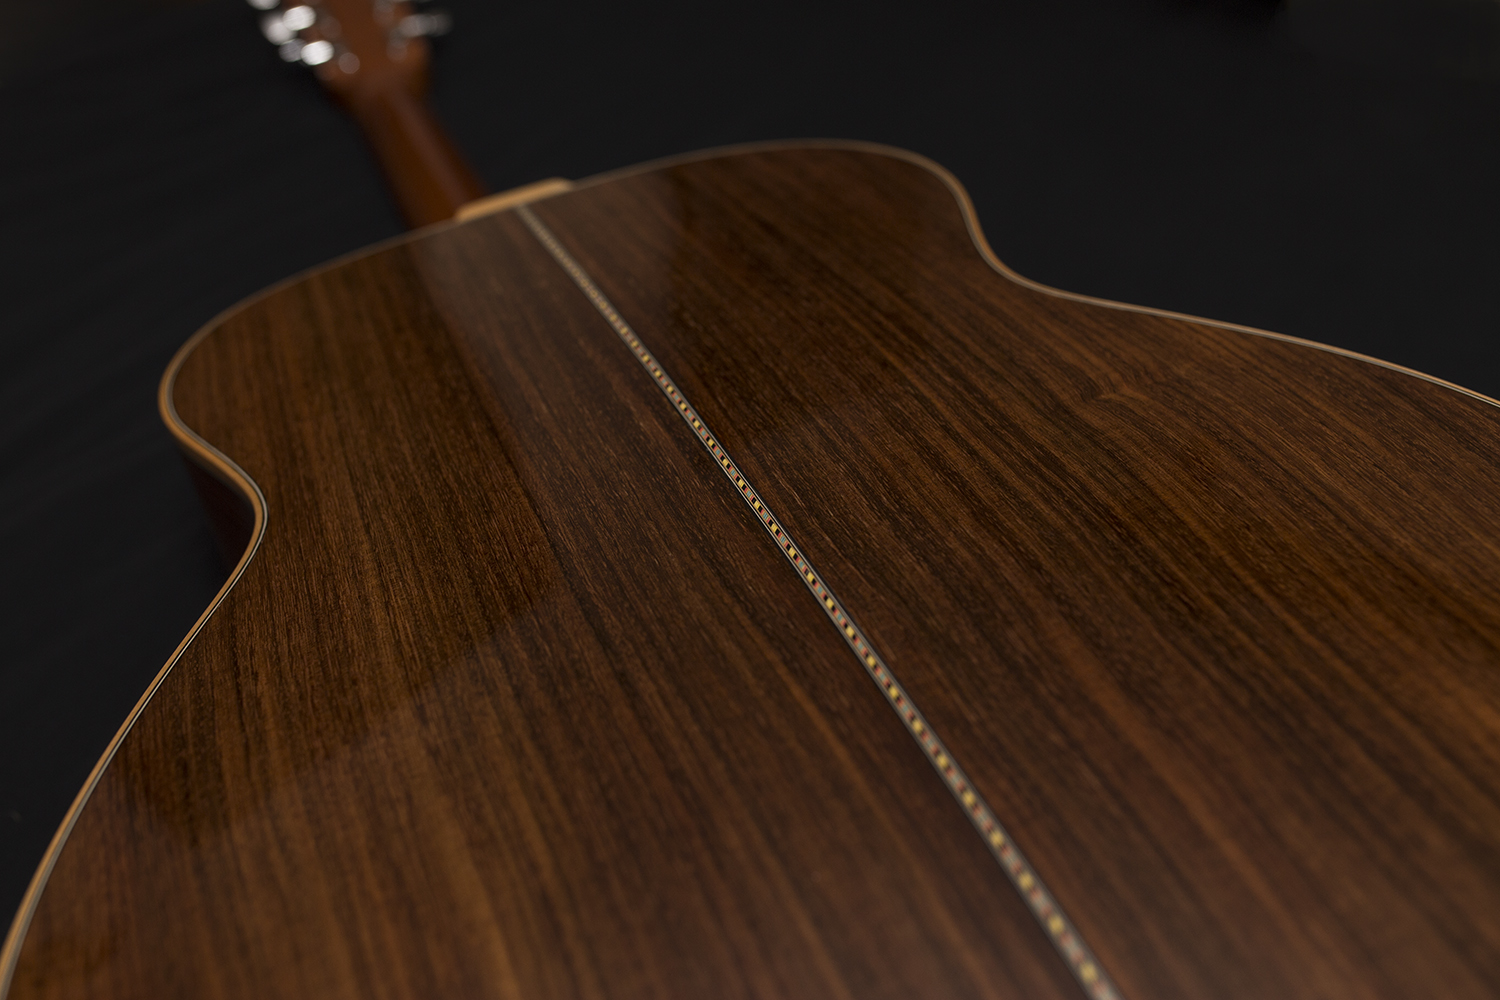 Froggy Bottom Guitars H-14 Product Highlight